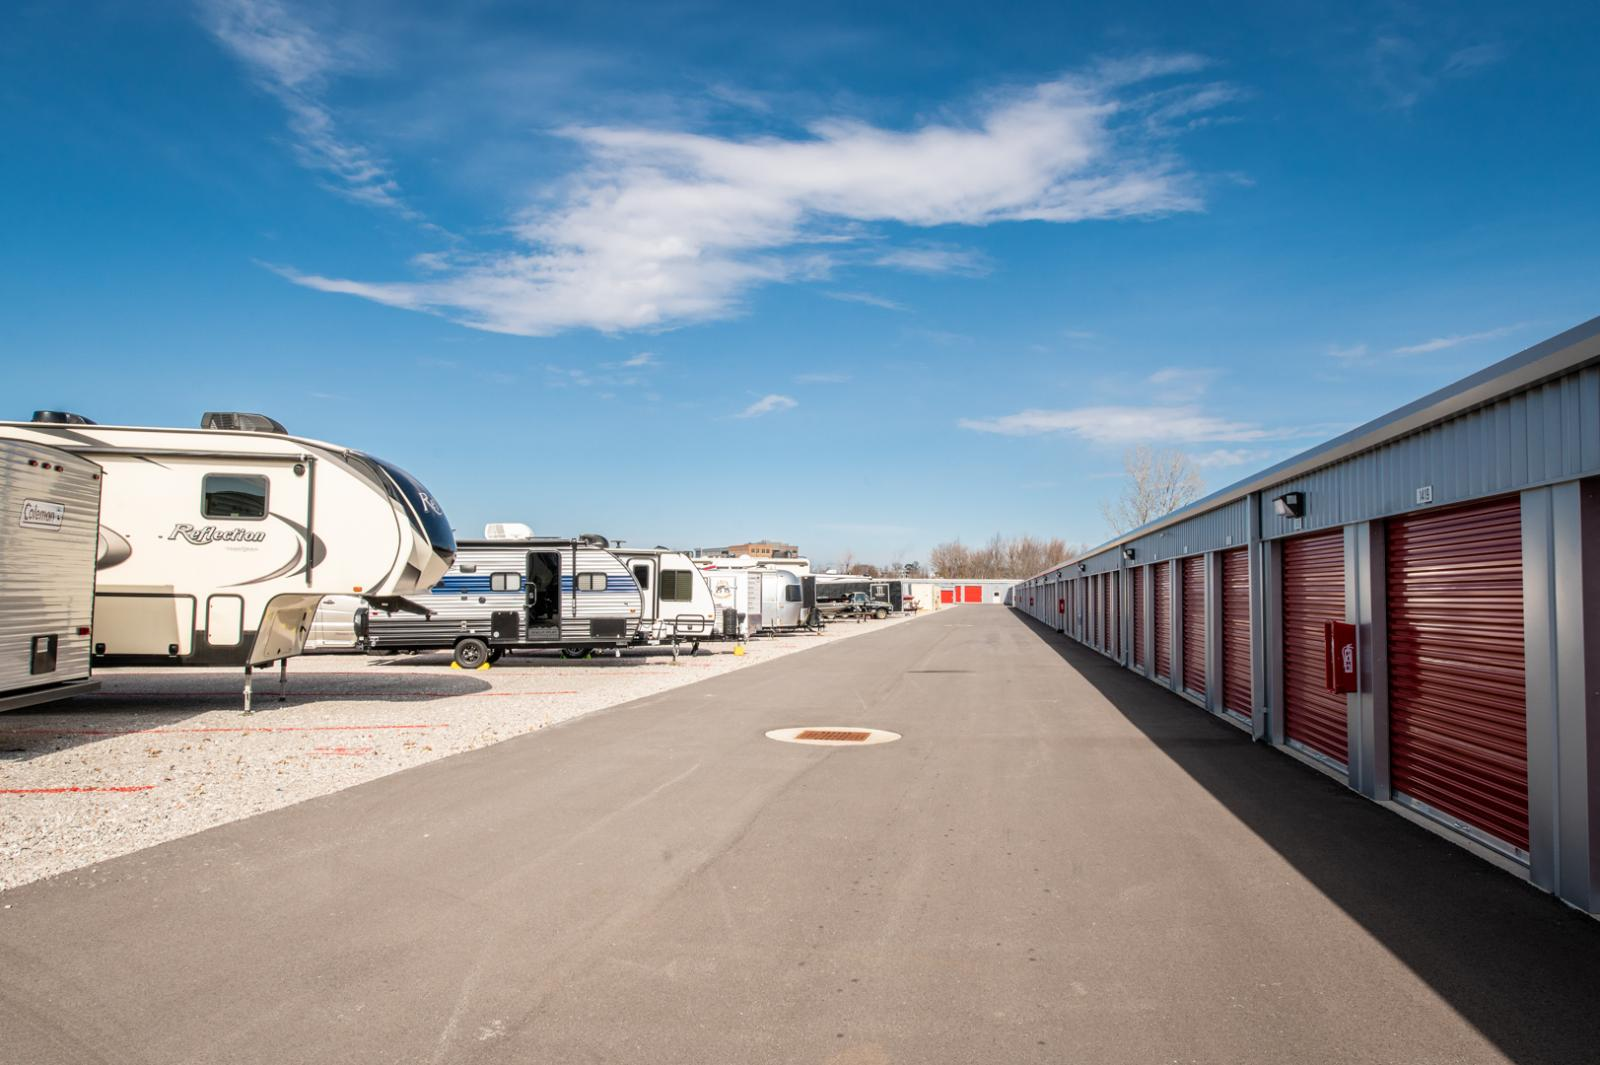 Photo of a line of RVs parked inside the secure facility provided at Modern Storage in Bentonville, Arkansas.